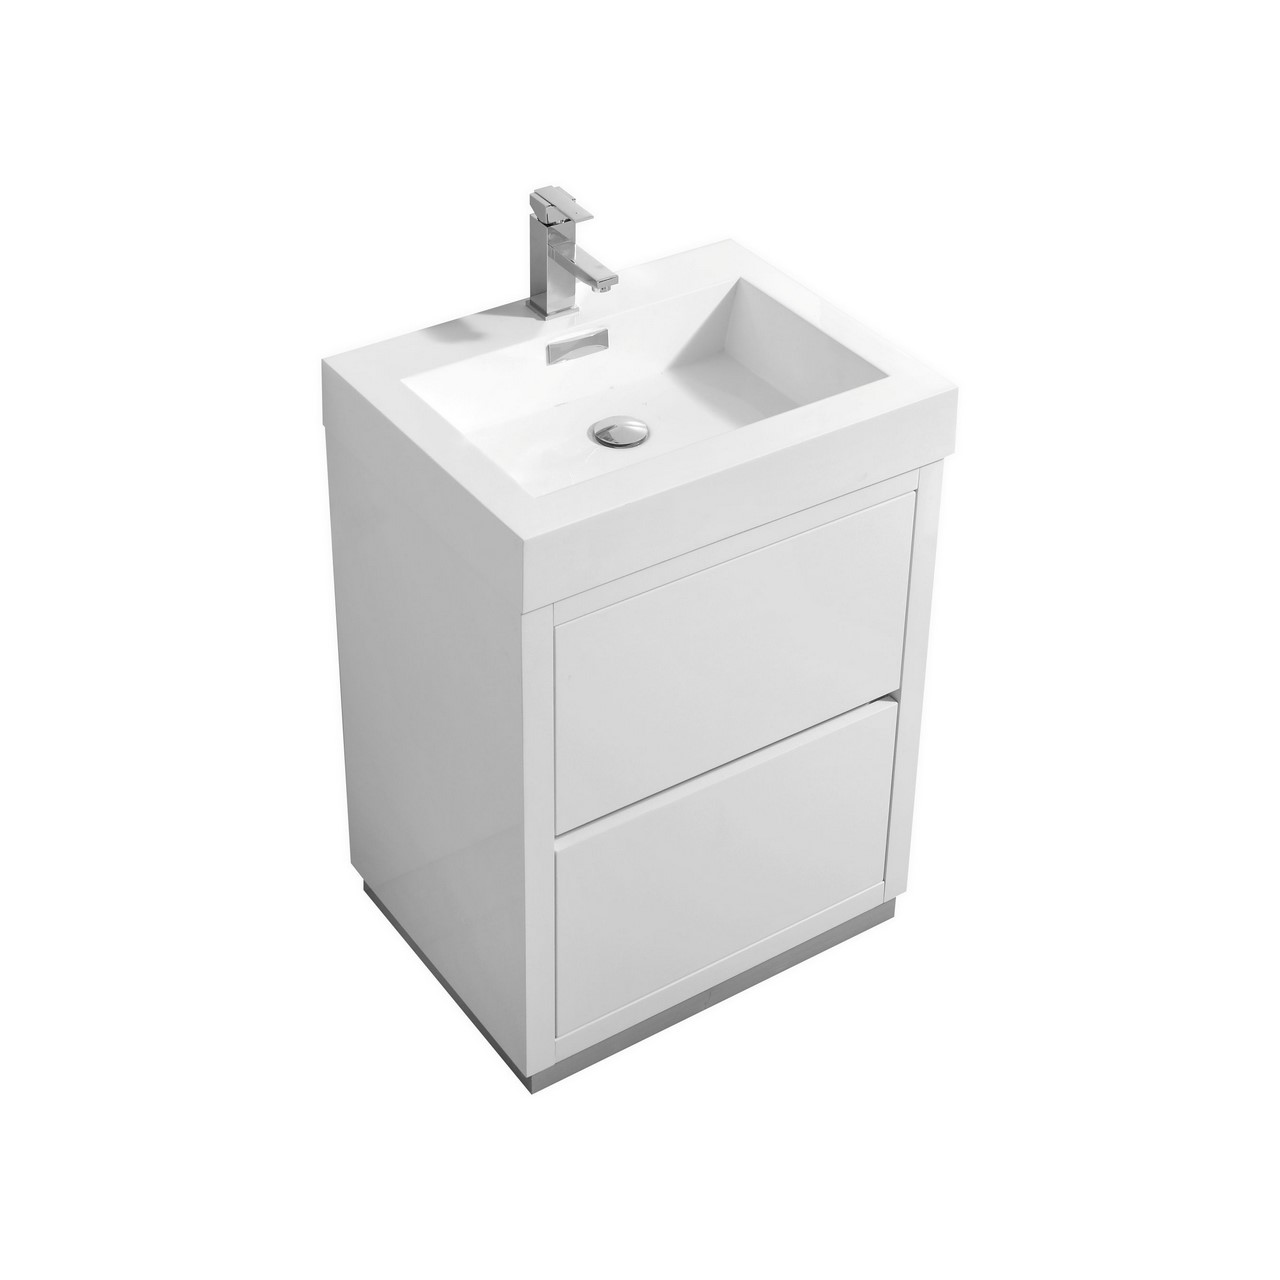 "Modern Lux 24"" High Gloss White Free Standing Modern Bathroom Vanity"